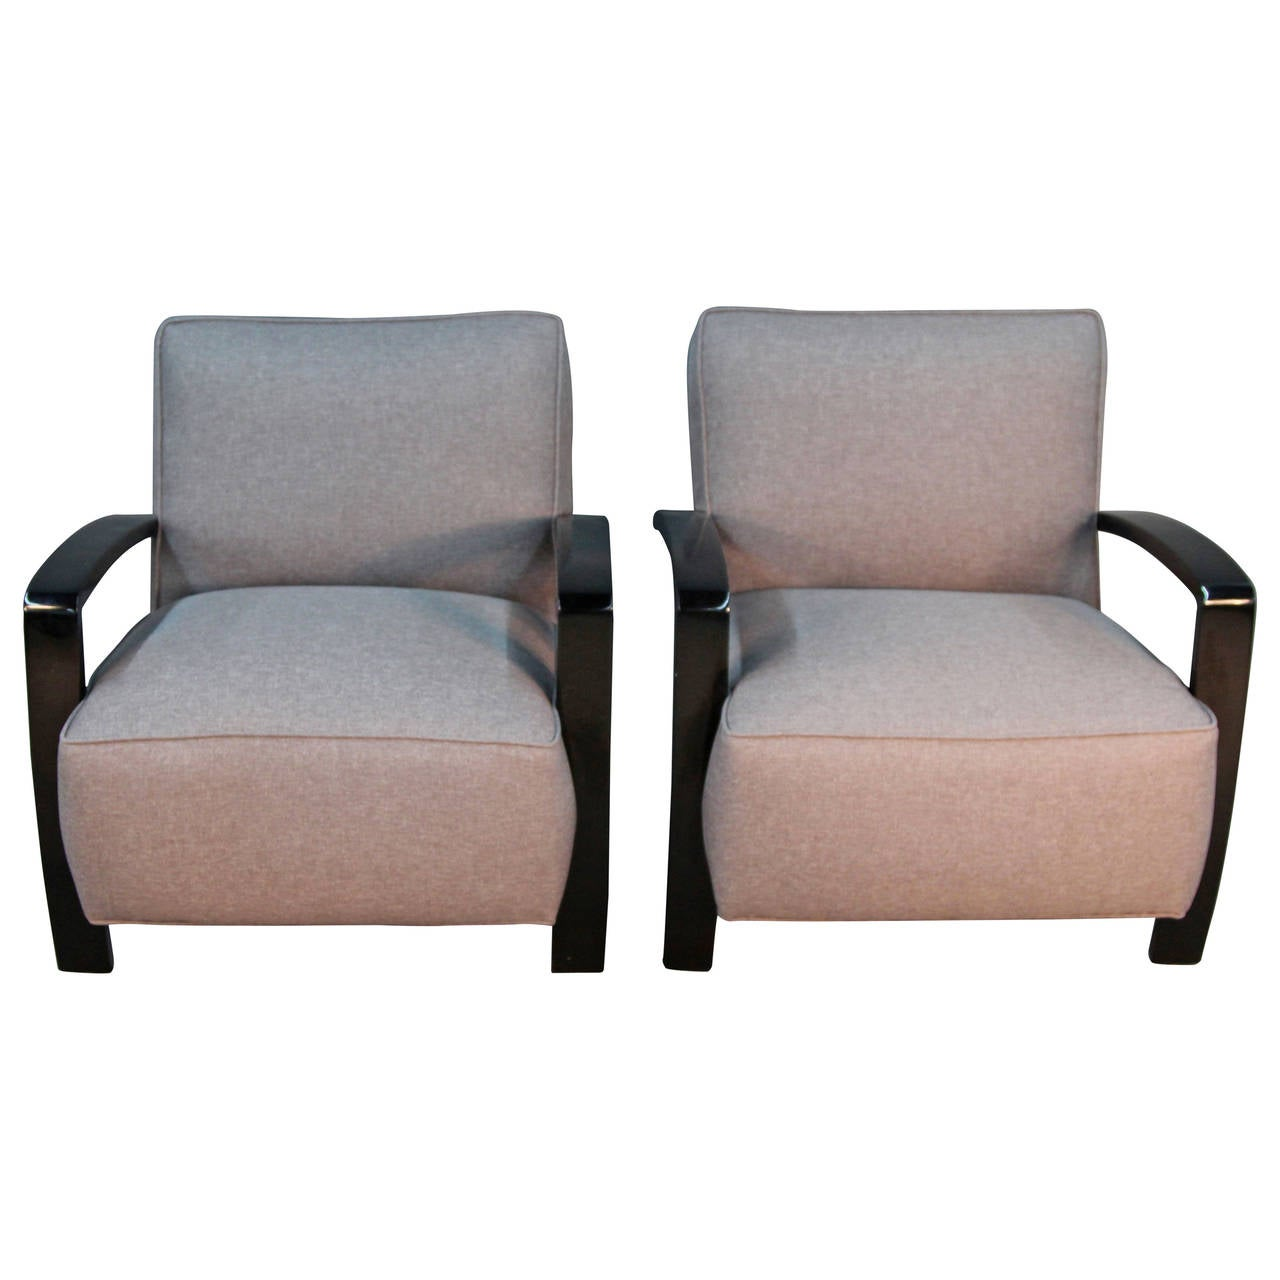 Art Deco Style Club Chairs With Lacquered Frame And New